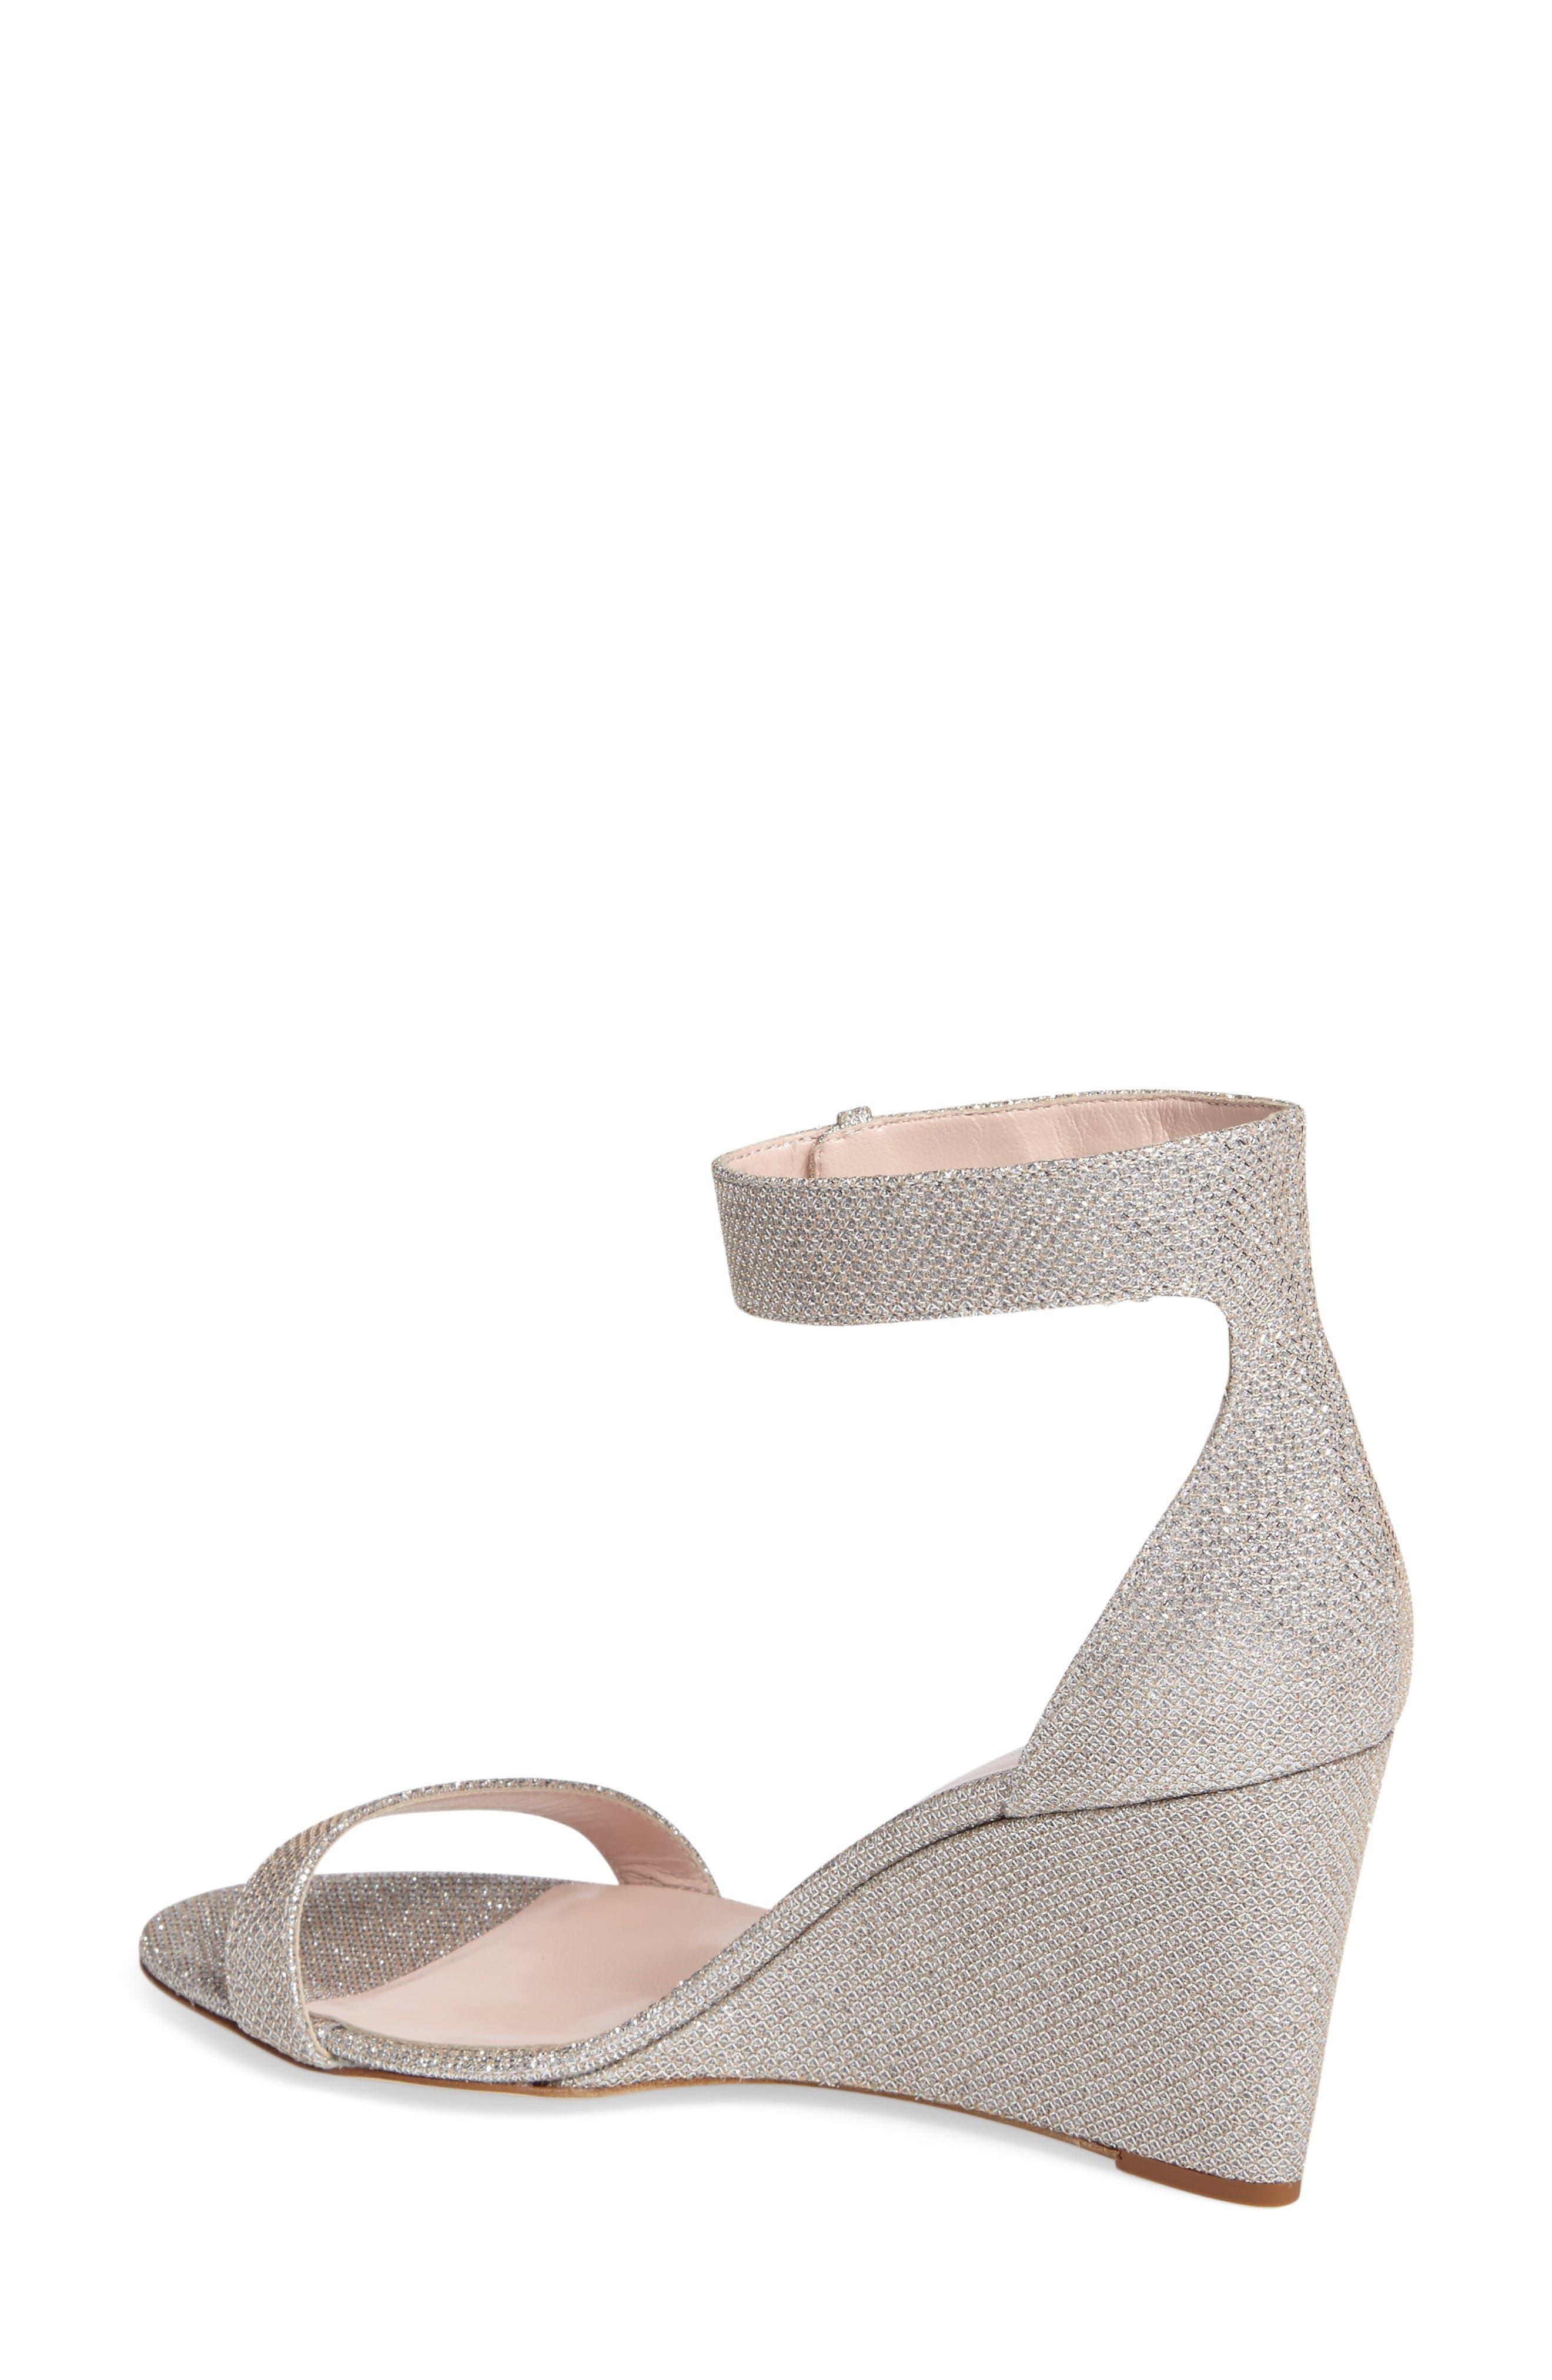 'ronia' wedge sandal,                             Alternate thumbnail 2, color,                             Silver/ Natural